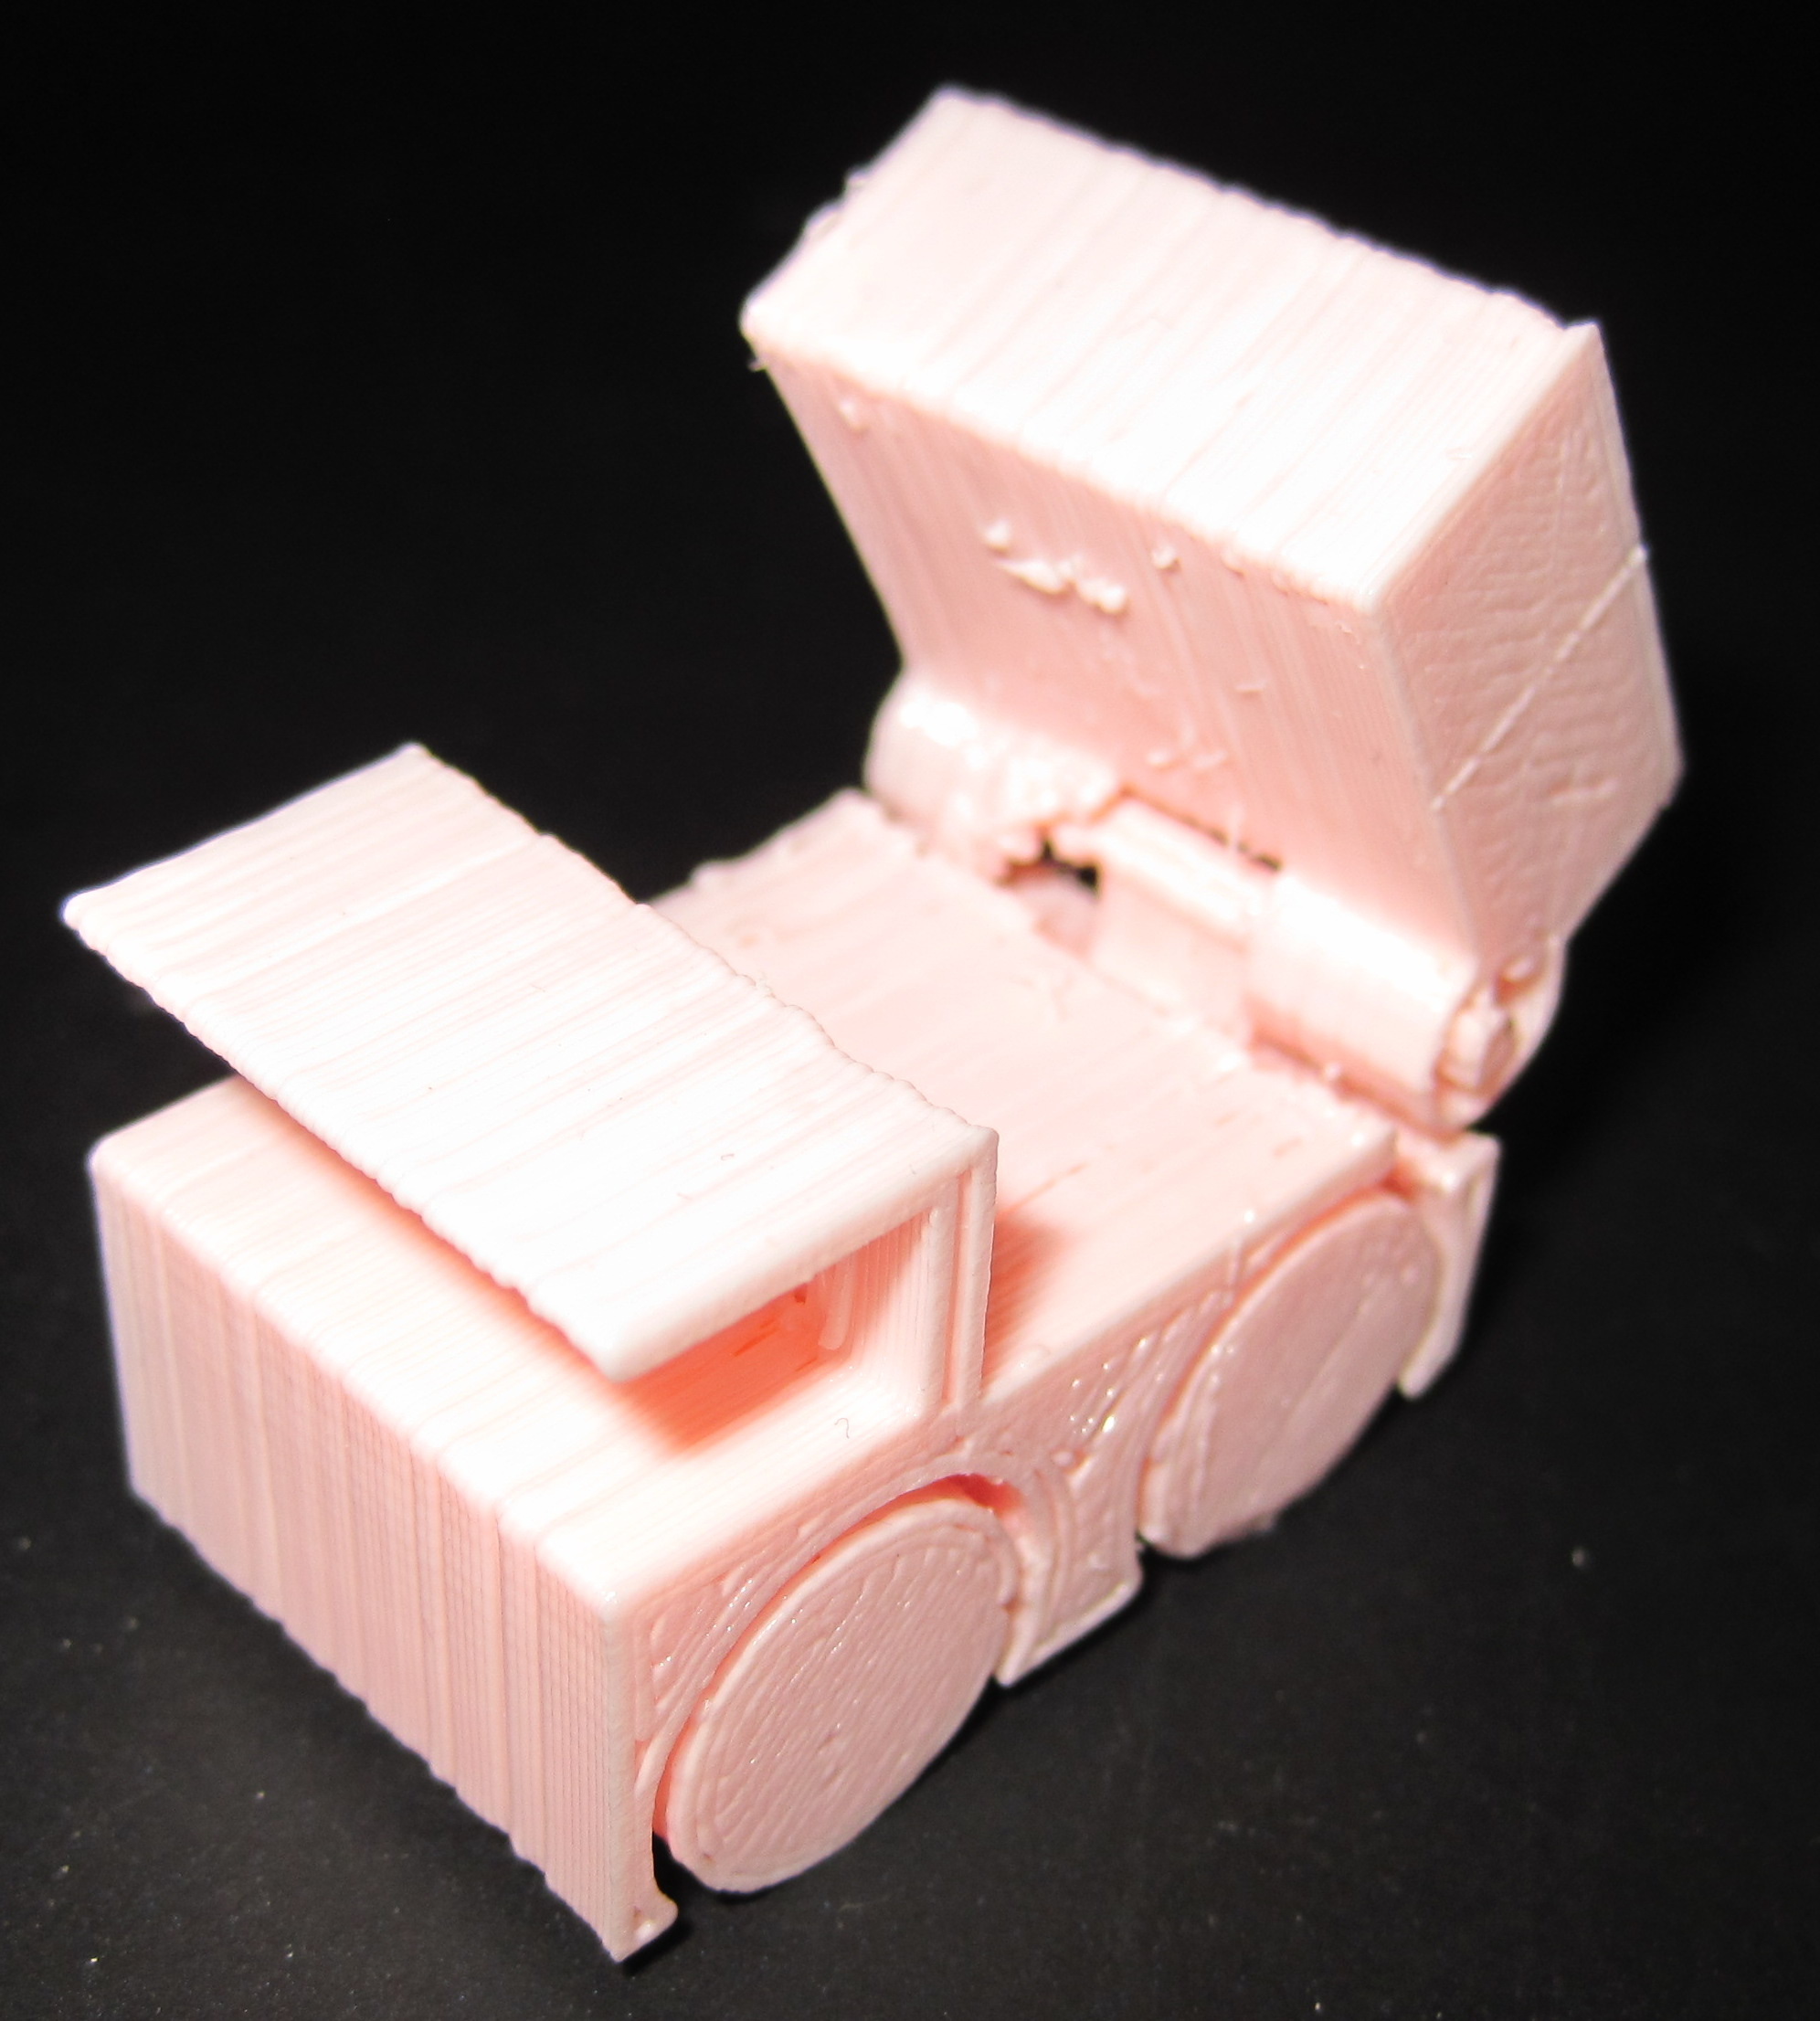 A 20mm high pink dump truck toy